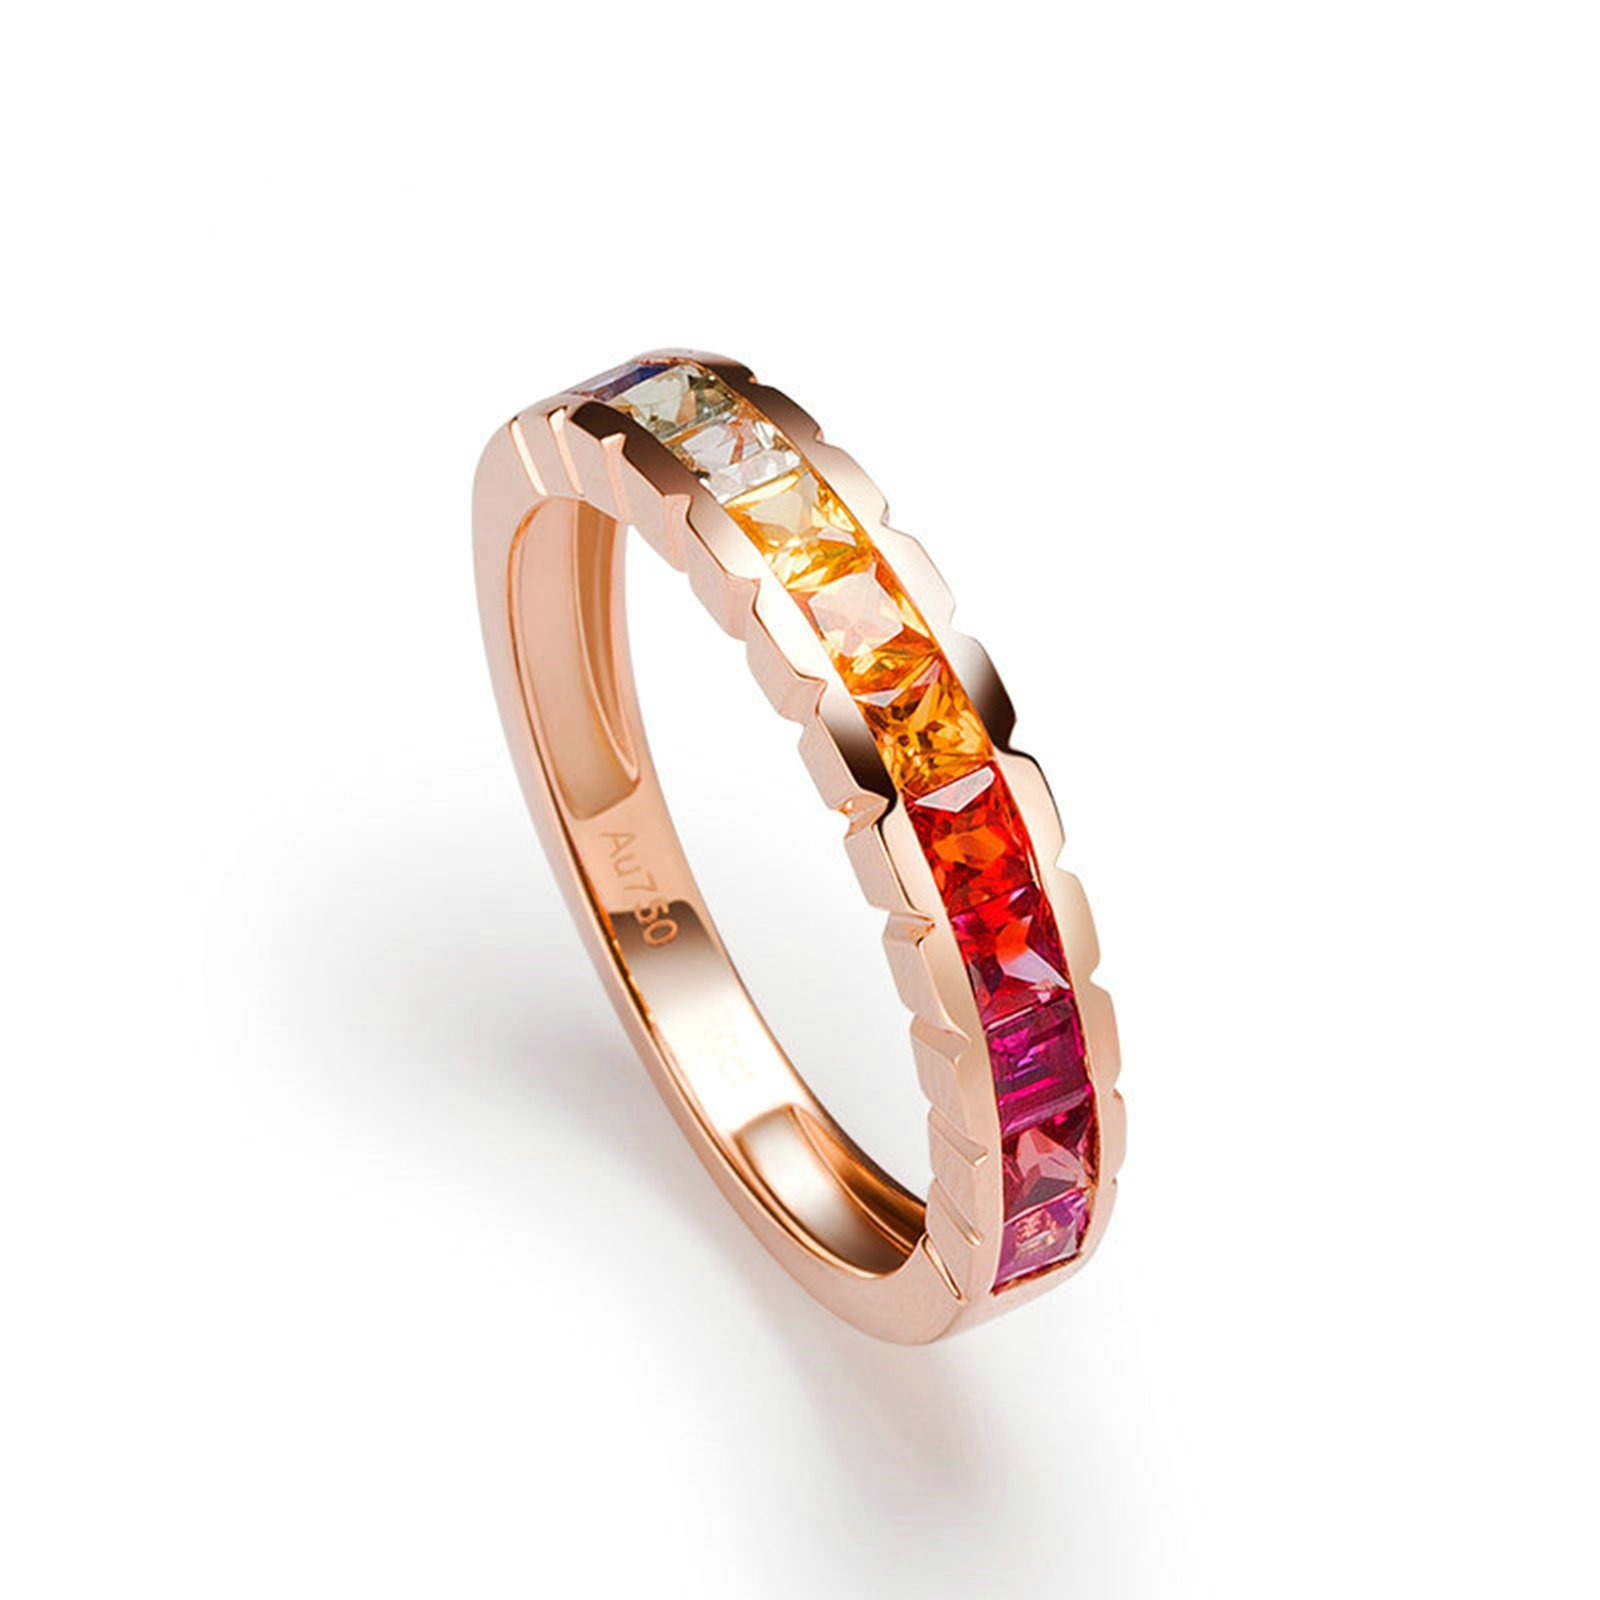 Gnzoe Rose Gold Women Wedding Rings Solitaire Promise Rings Rose Gold with Colorful 1.25ct Sapphire Size 7.5